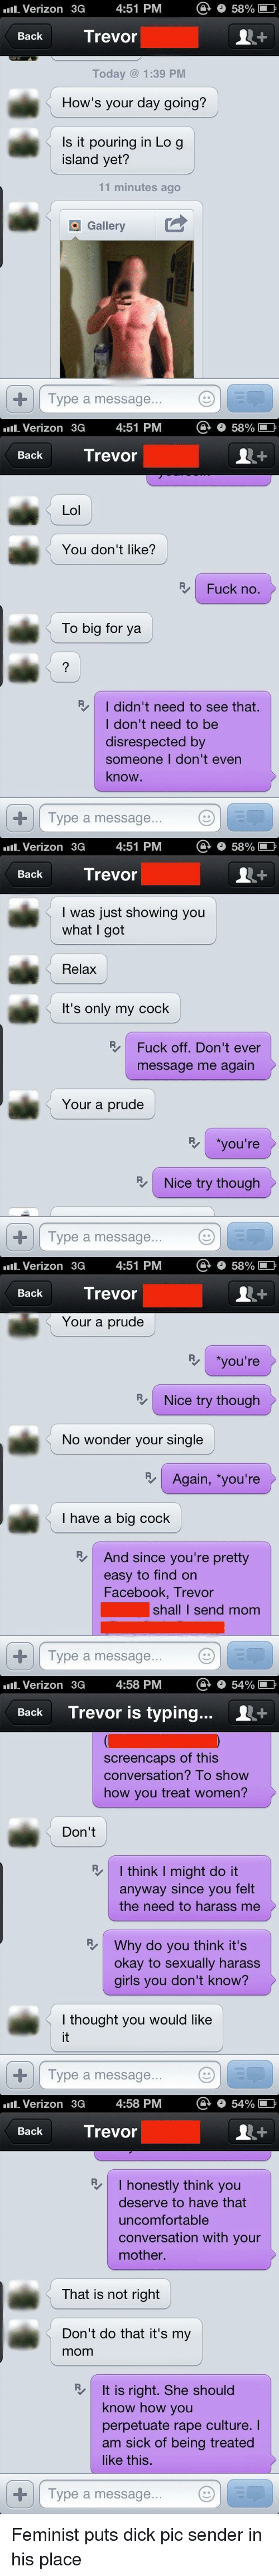 Bad Fake Texts: Verizon 2a 4:51 PM o  Back Trevor  How's your day going?  Is it pouring in Log  You don't like?  To big for ya  I didn't need to see that.  I don't need to be  disrespected by  someone I don't even  Type a message  I was just showing you  Relax  It's only my cock  Fuck off Don't ever  message me again  Your a prude  Verizon 3a 4:51 PM o sa%  Back Trevor  Nice try though  No wonder your single  I have a big cock  And since you're pretty  easy to find on  Facebook, Trevor  shall I send mom  Type a message  Back Trevor is typing... 1+  screencaps of this  conversation? To show  how you treat women?  I think I might do it  anyway since you felt  the need to harass me  Why do you think it's  okay to sexualy harass  girls you don't know?  I thought you would like  Back Trevor  honestly think you  deserve to have that  uncomfortable  conversation with your  That is not right  Don't do that it's my  It is right. She should  know how you  perpetuate rape culture. I  am sick of being treated Feminist puts dick pic sender in his place